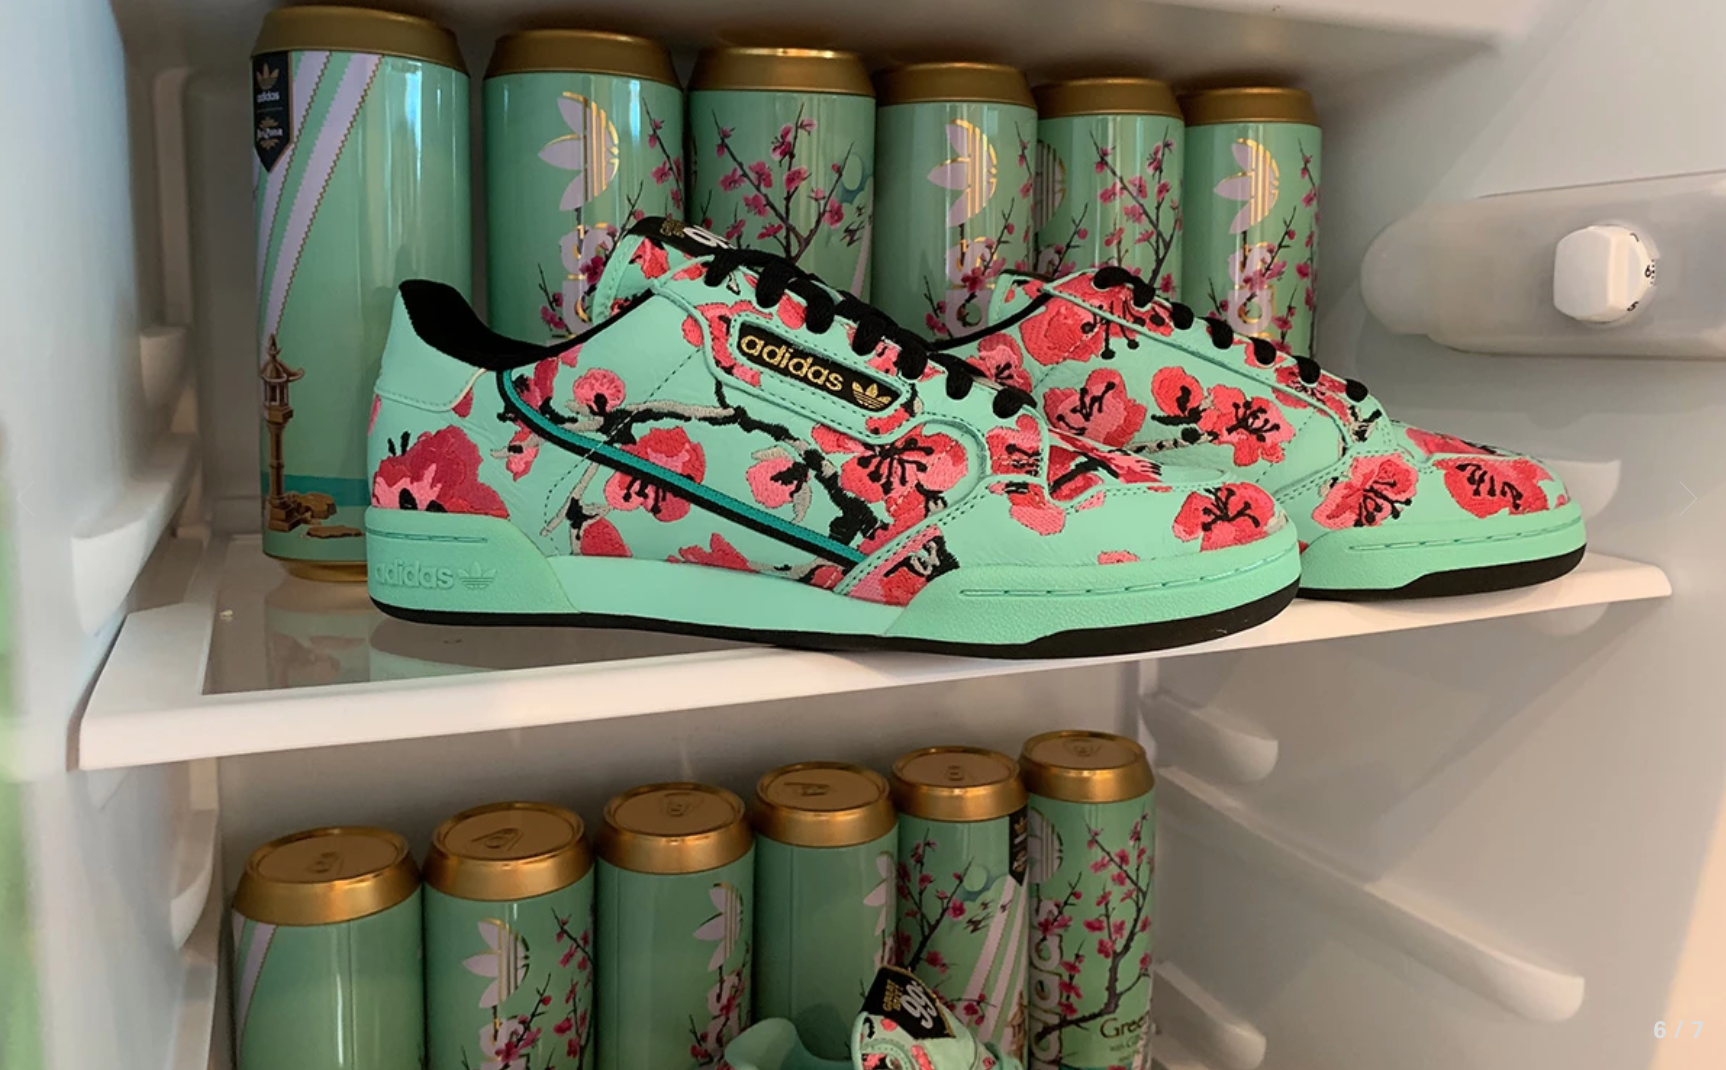 Adidas Teams Up With AriZona Iced Tea for 99-cent Sneakers